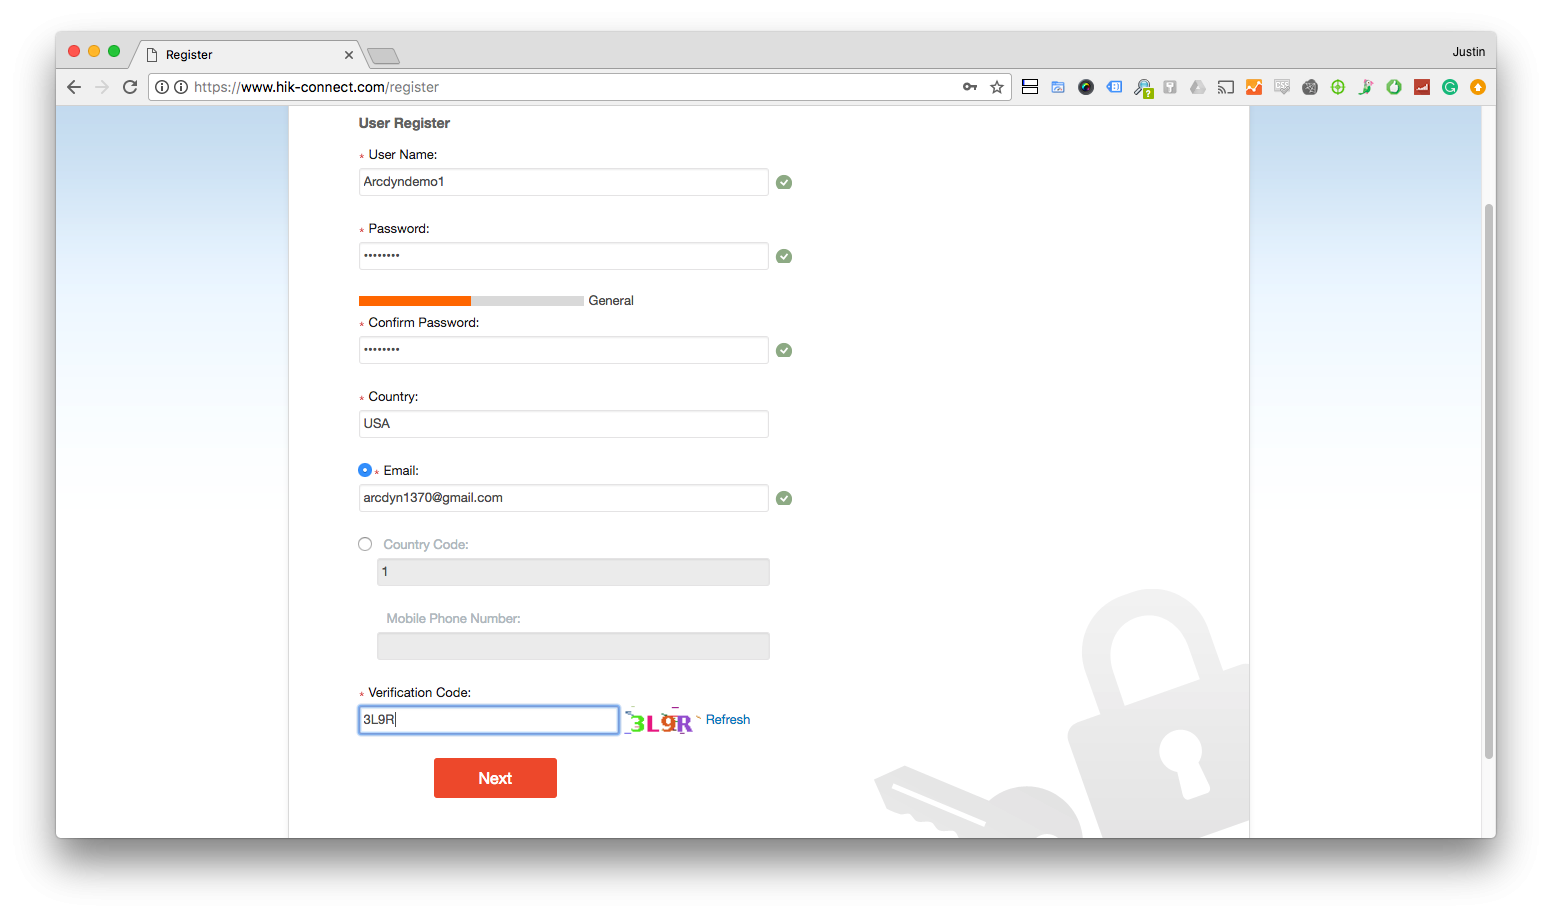 How To Create A Hik-Connect Account on Hik-Connect com - App